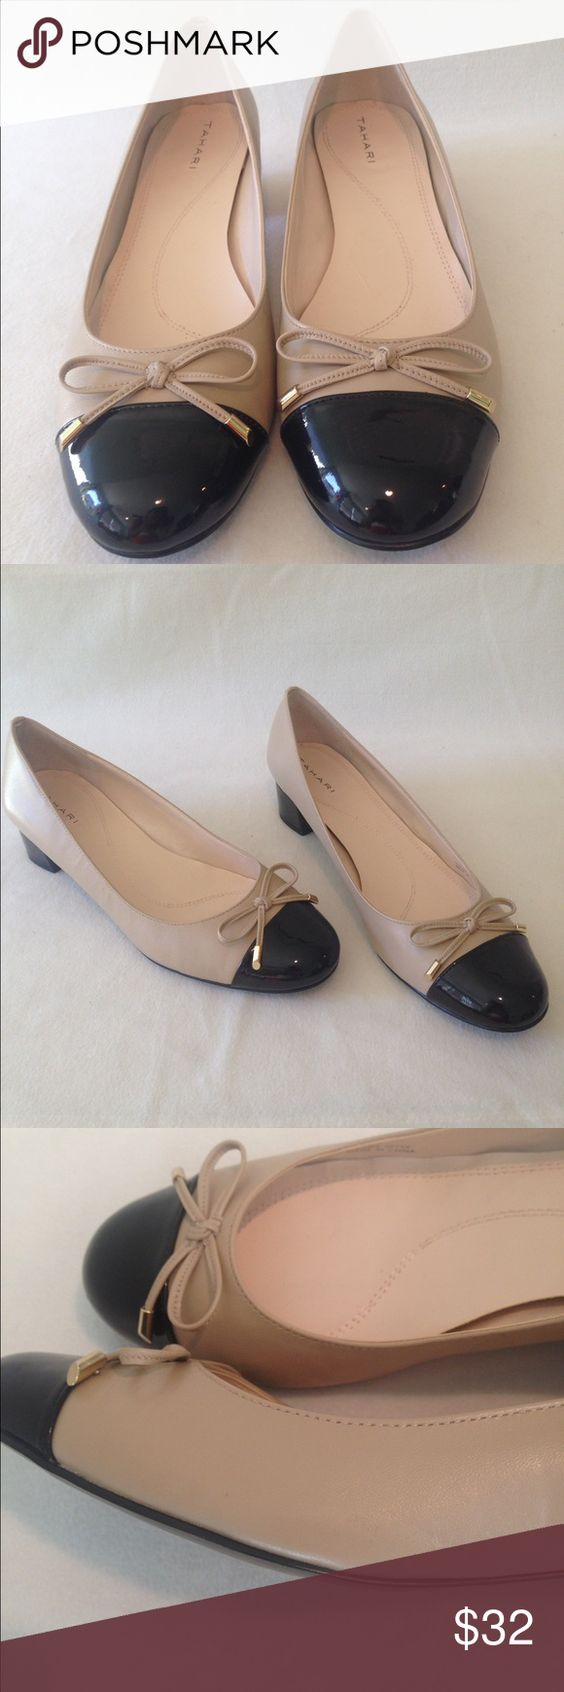 TAHARI Women's heel pumps cap toes patent leather TAHARI 1.5 Inch heel pumps,  leather upper and black patent leather heels. Cap toes. They're perfect for all types of occasions! Condition:Used but they are in good condition. Gently worn; comes from a smoke-free home. Very minimal scuff on soles and outer shoe as shown in pictures.  Style:Pumps Type:cap toes Size:10M Heel Height:1.5 inch Color:beige / tan  Material:leather upper Tahari Shoes Heels